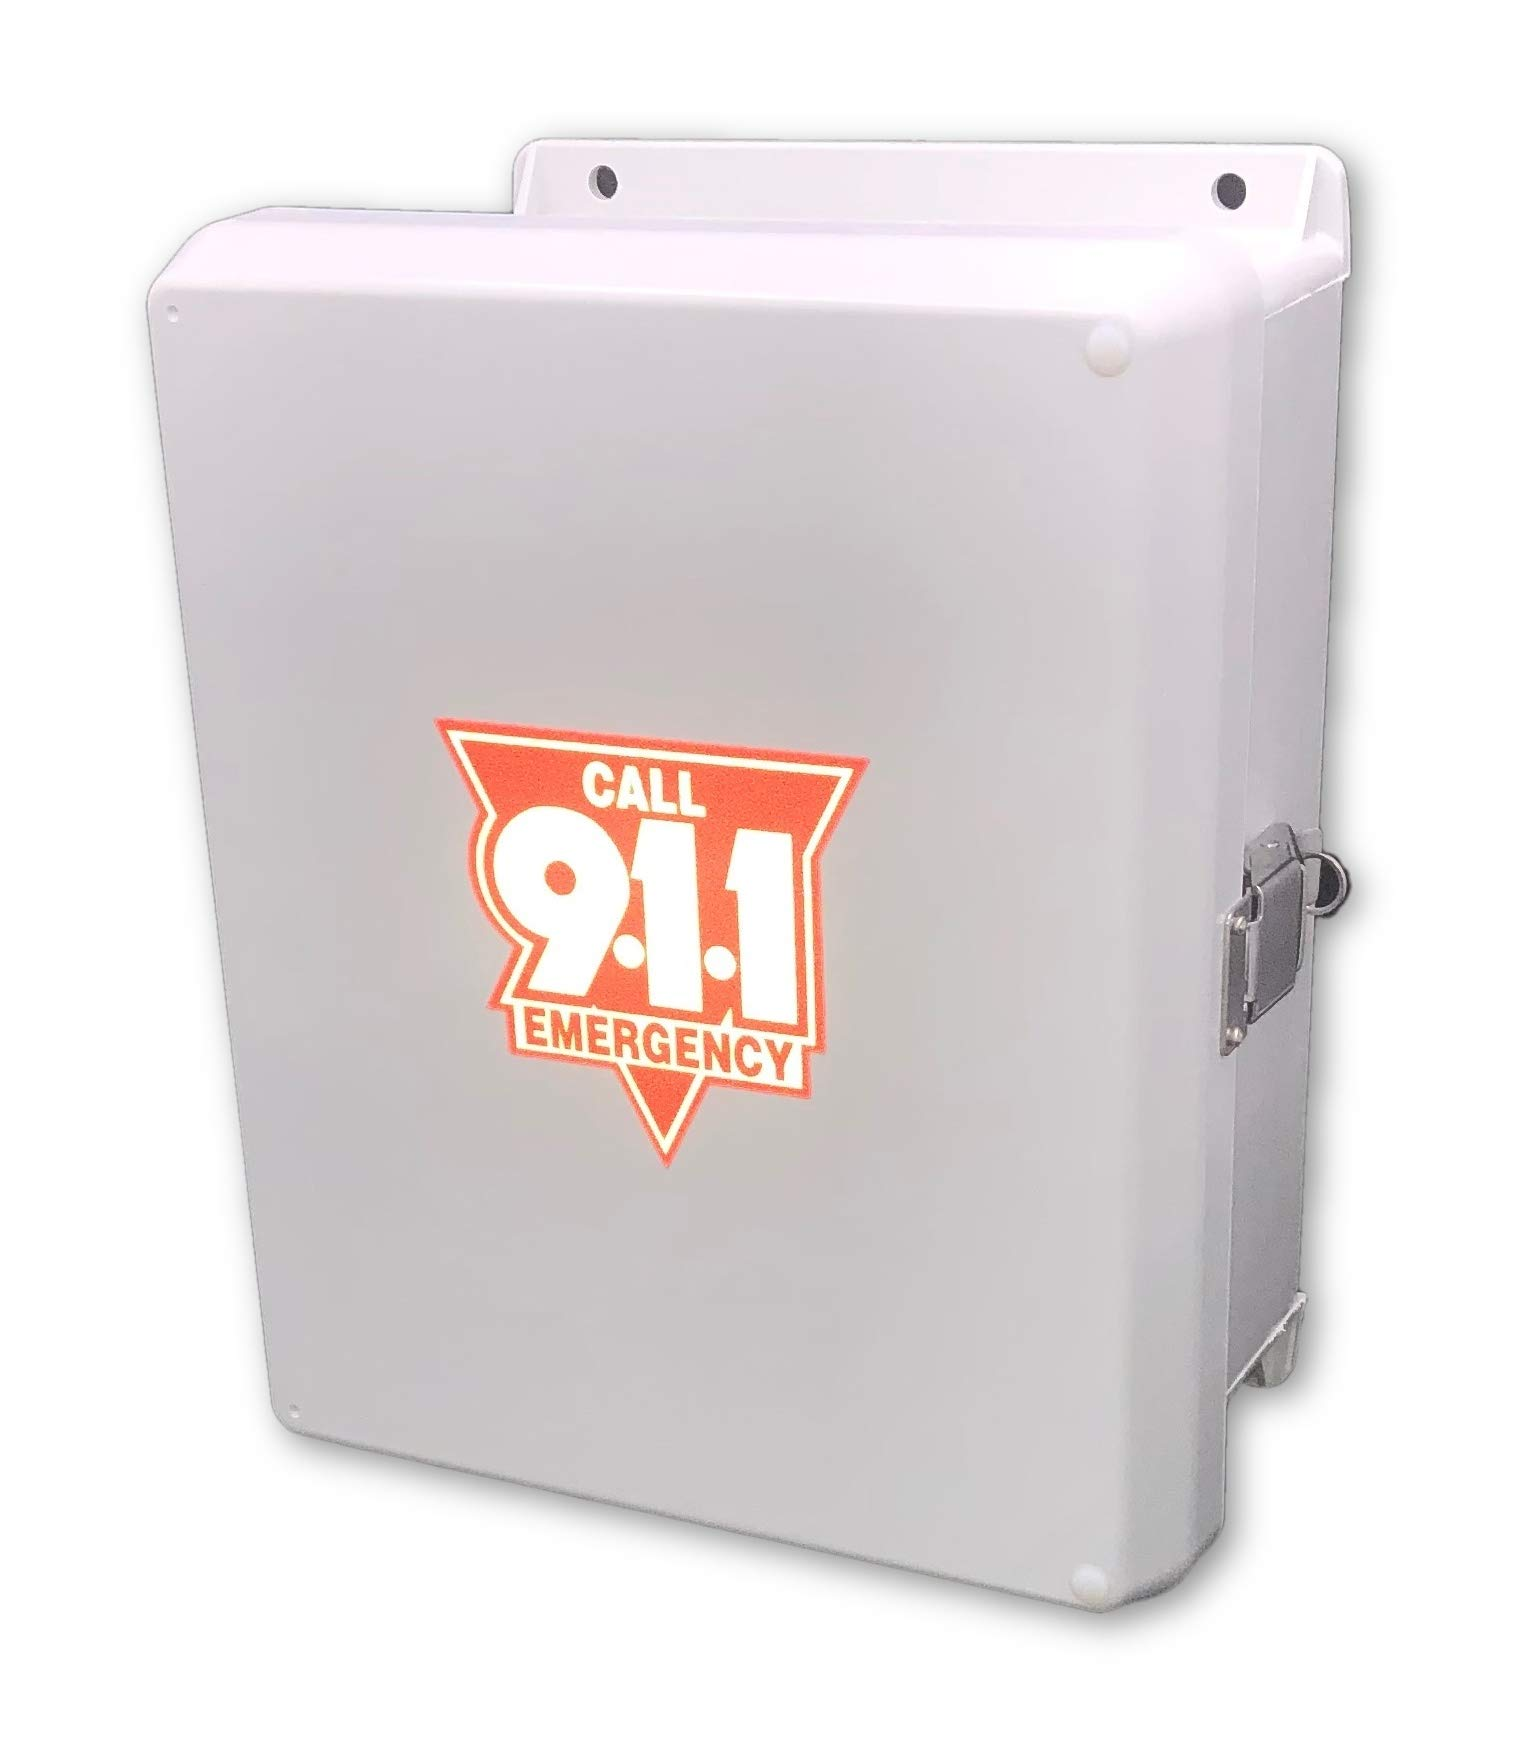 Emergency Pool Phone - 911 Only Cellphone with Weatherproof Outdoor Enclosure Phone Box Cabinet by AA Communications Pool Phone